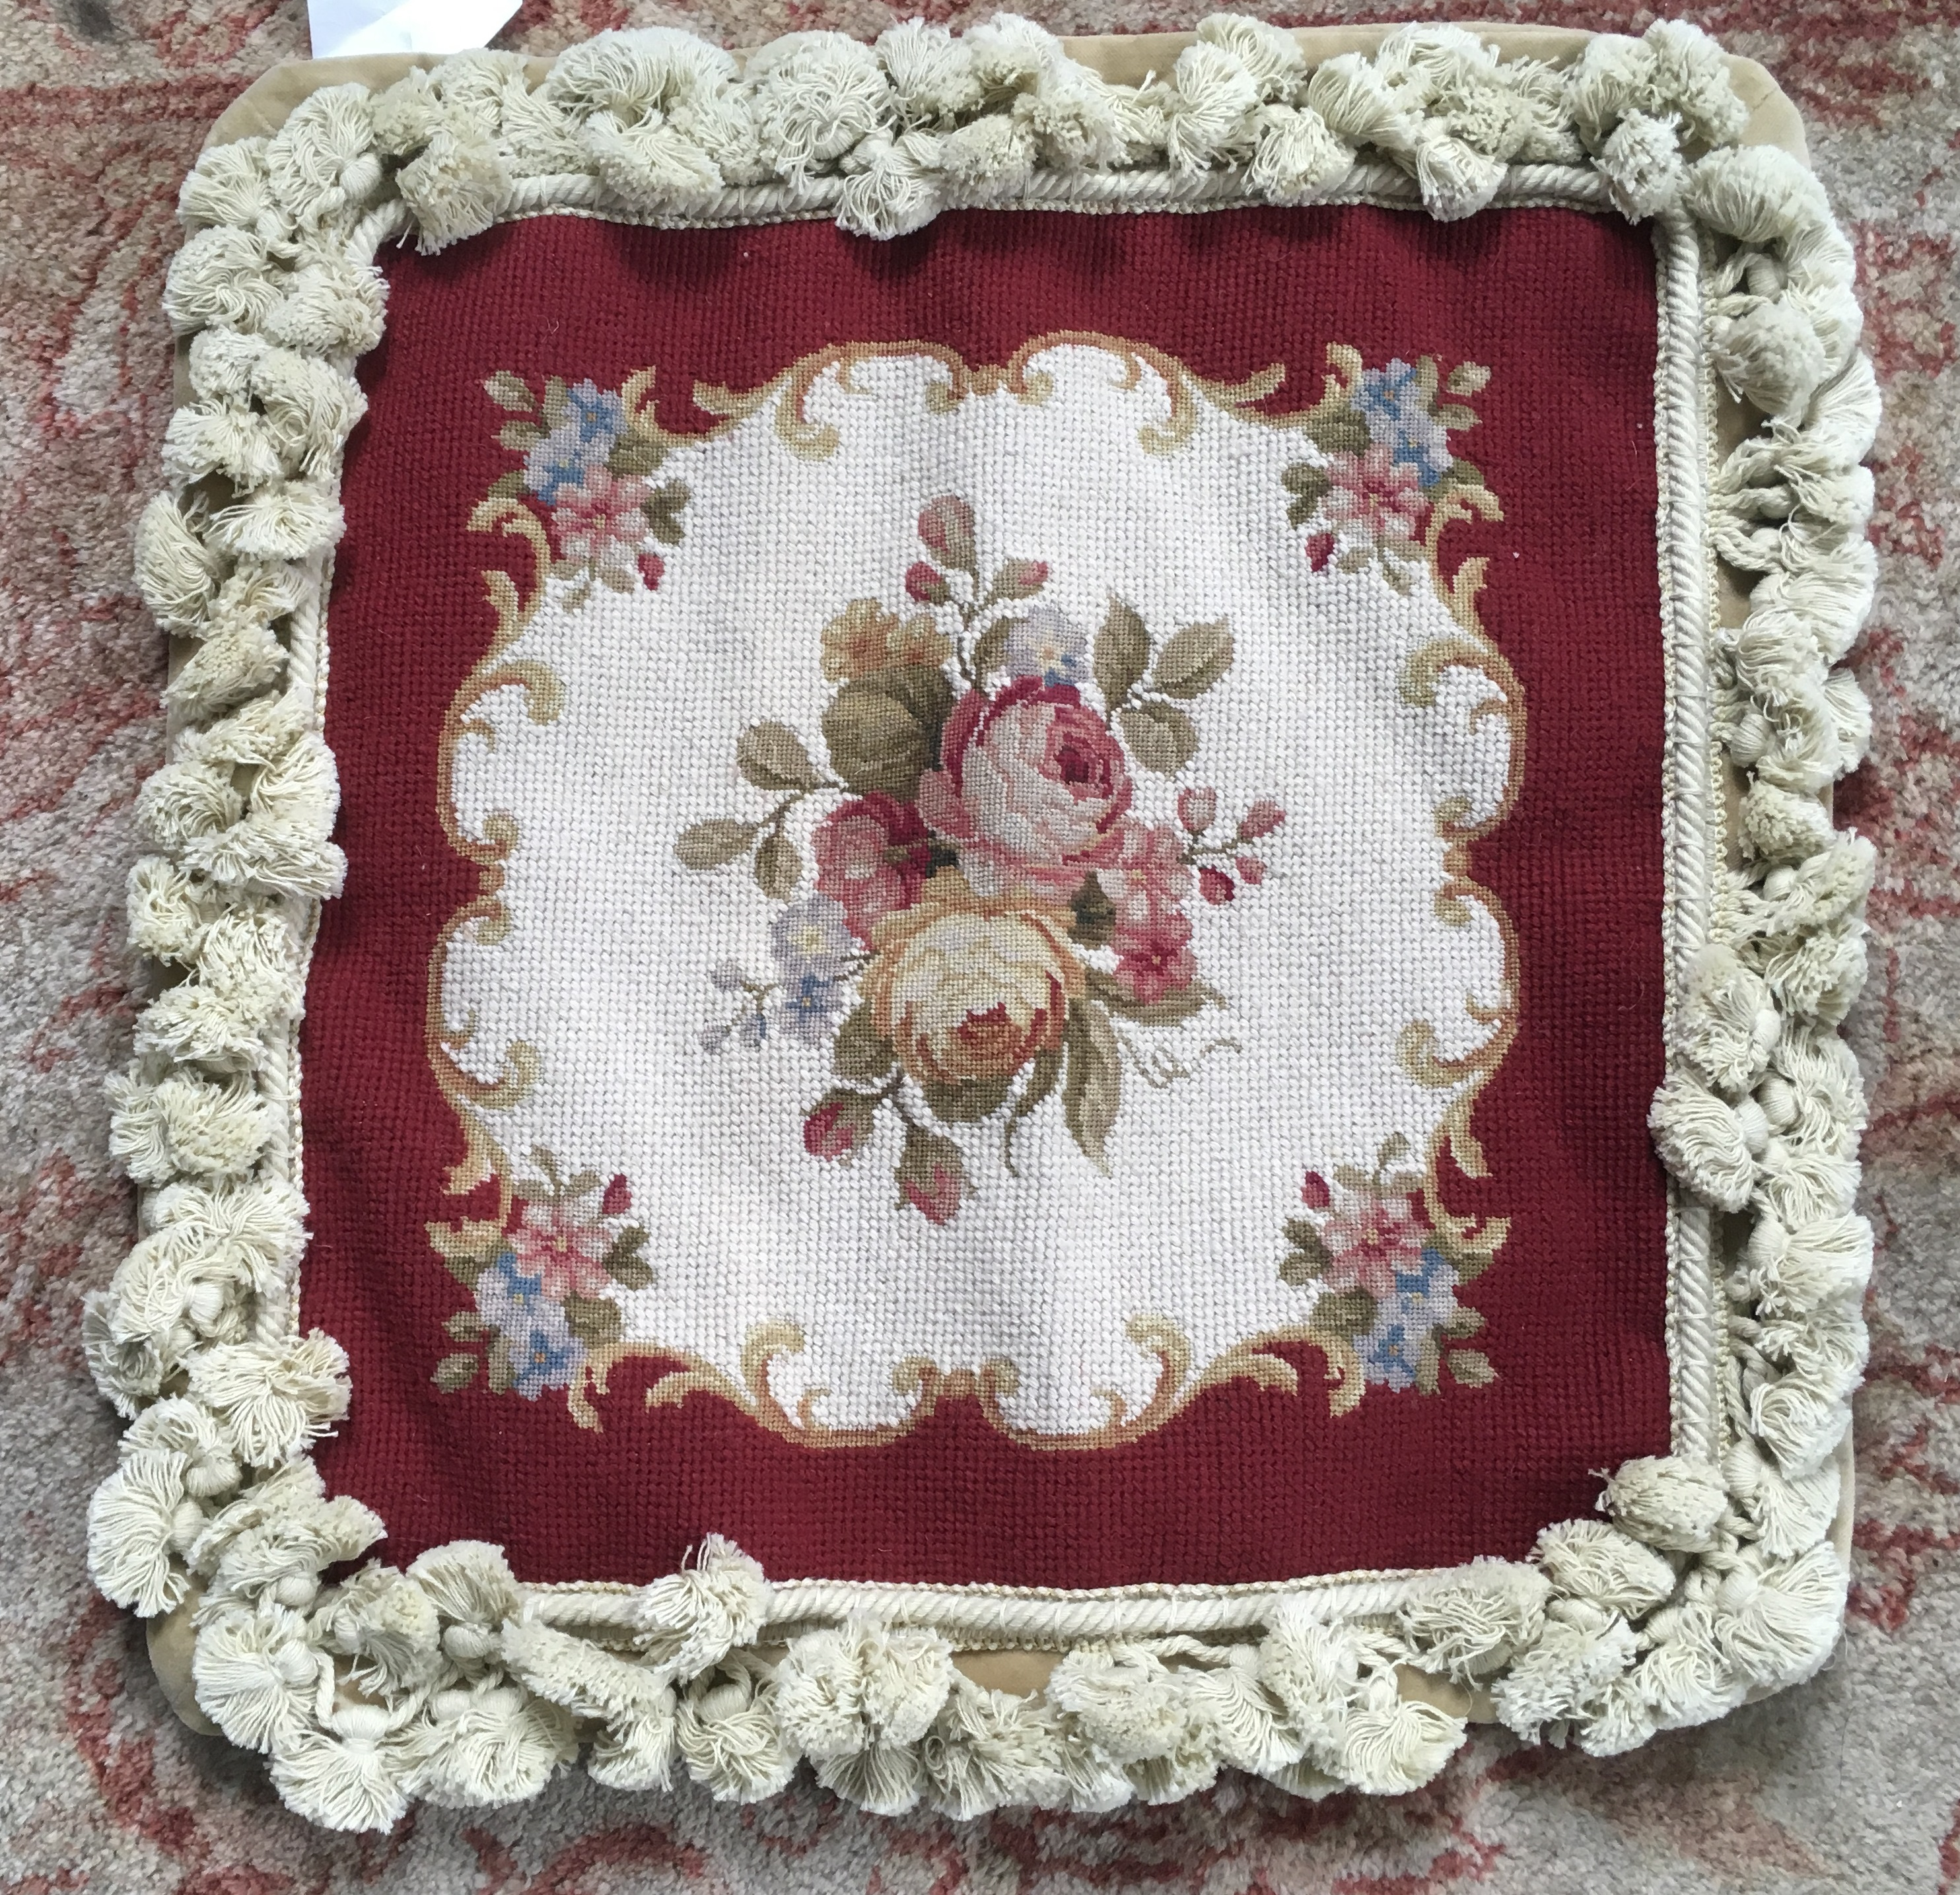 14″ x 14″ Handmade Wool Needlepoint Roses Cushion Cover Pillow Case with Fringe 12980413